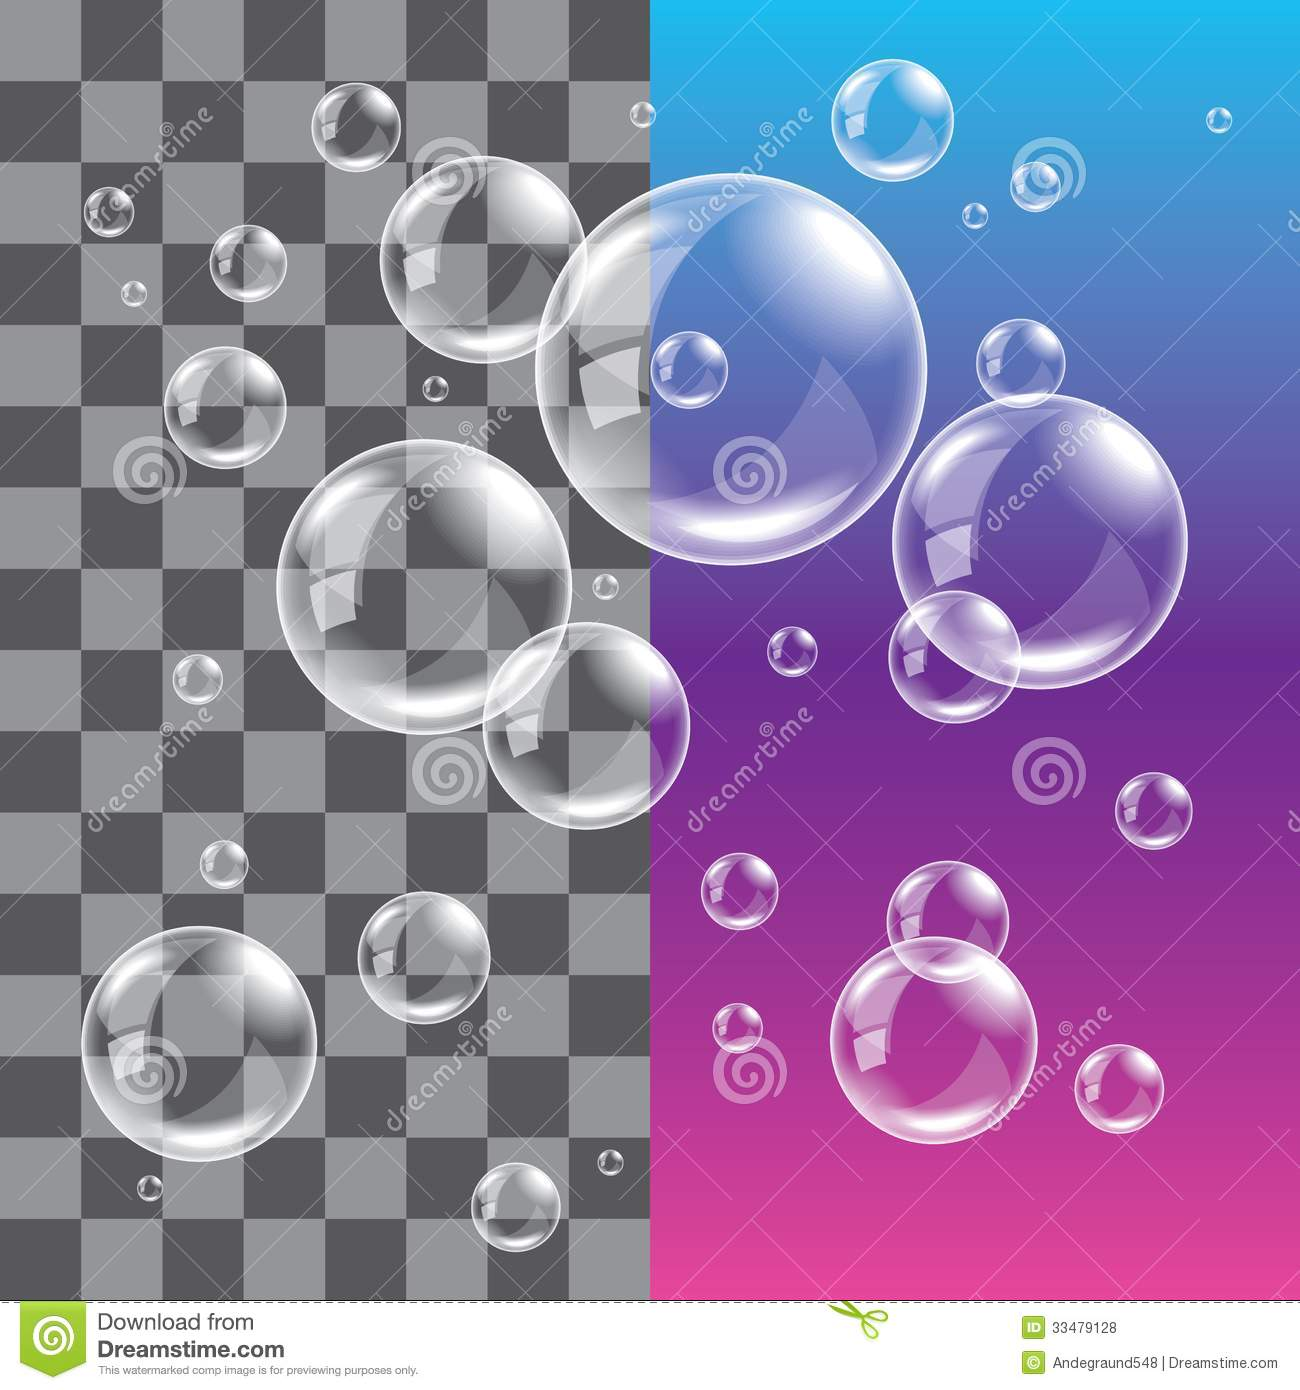 Soap bubble background download free vector art stock graphics - Royalty Free Stock Photo Background Dark Soap Transparent Water Sphere Isolated Illustration Bubble